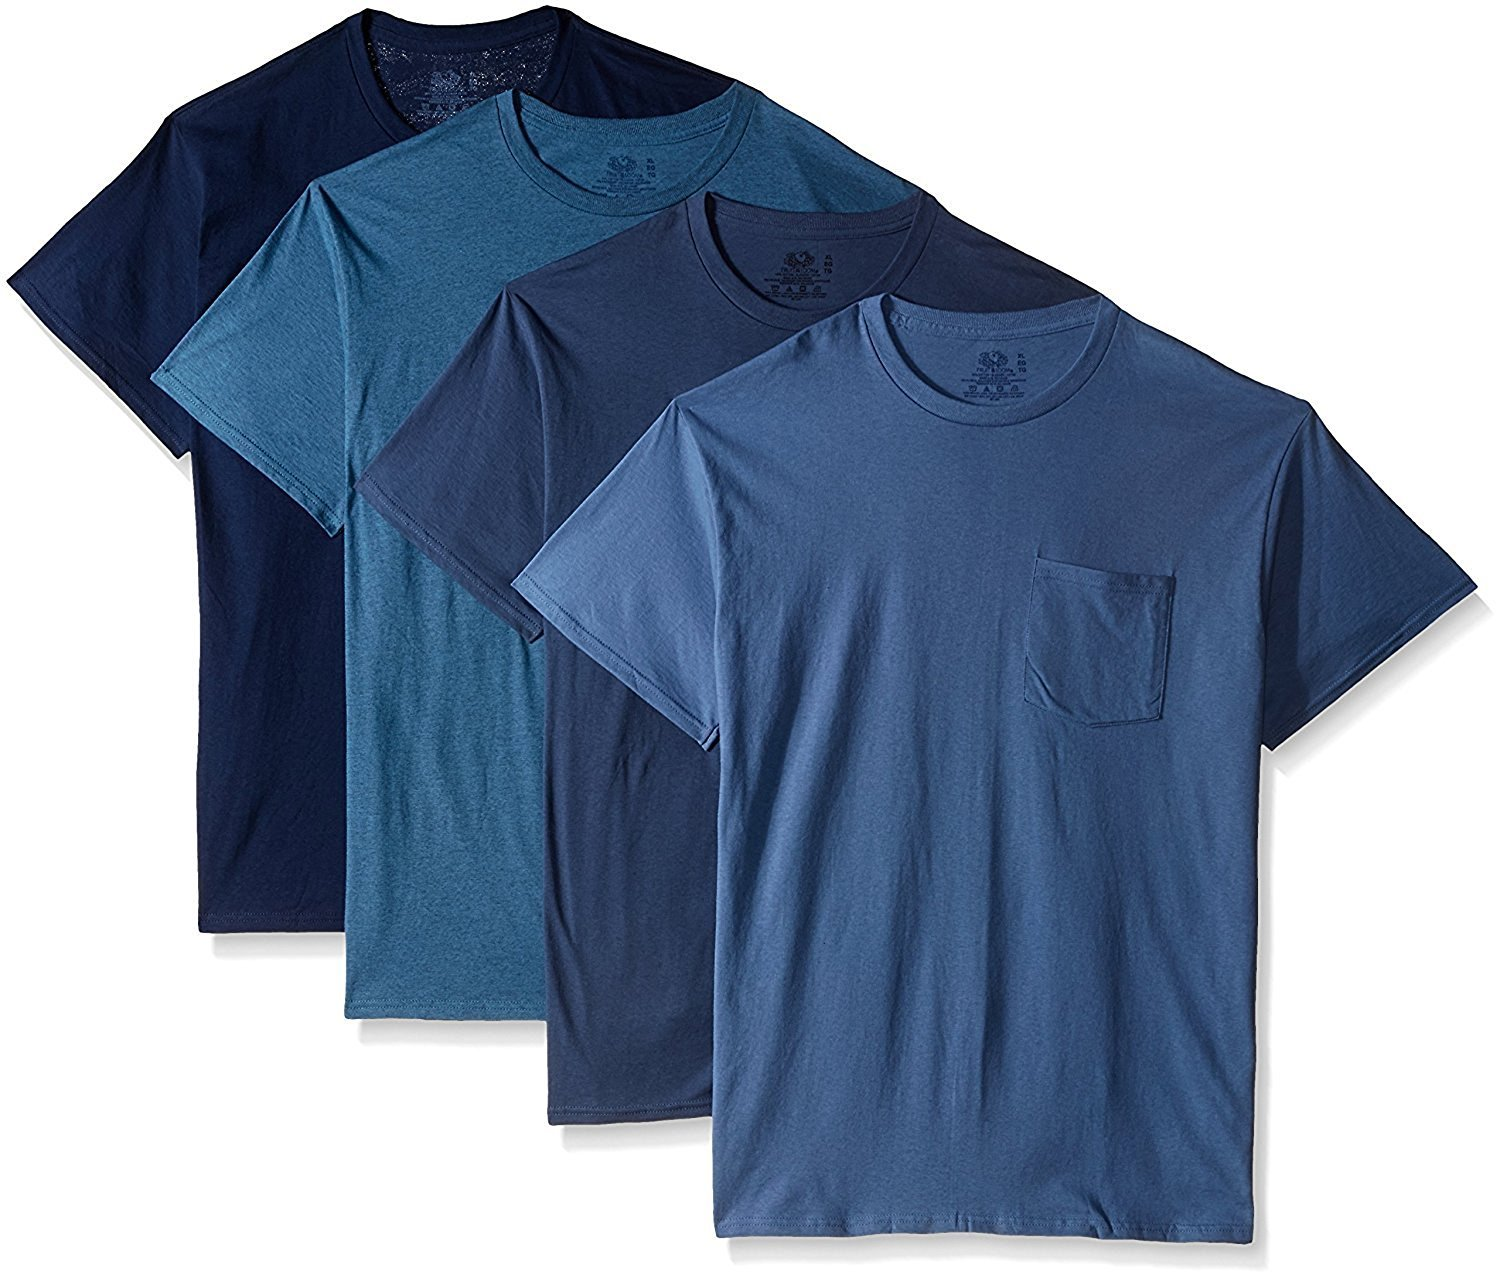 Fruit Of The Loom Men's Pocket Crew Neck T-Shirt (Pack Of 4) (Multi-Shade Blue, 2X-Large/50-52'' Chest) by Fruit of the Loom